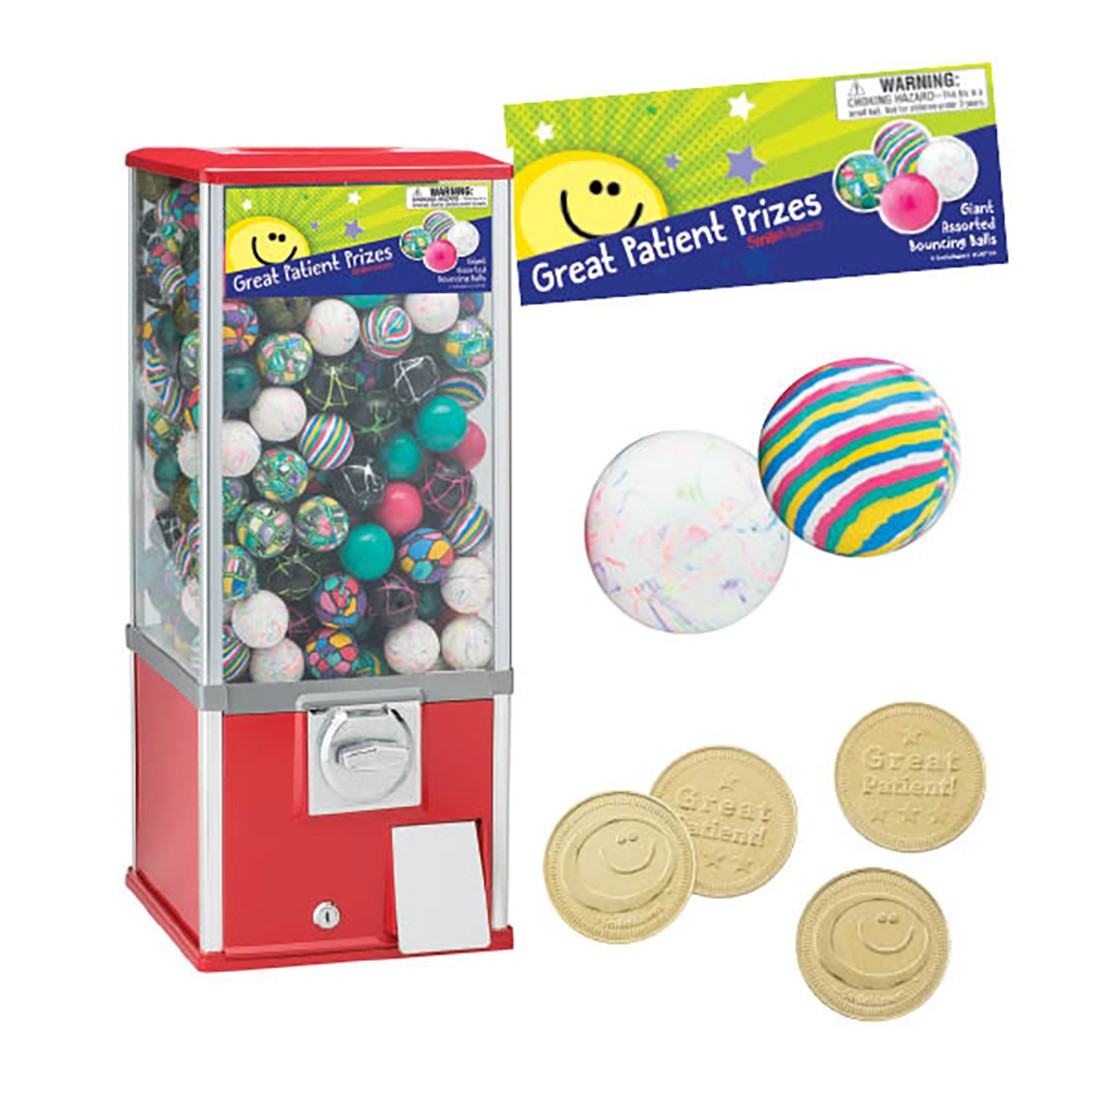 Toy Balls Vending Machine Starter Pack- capsule toys and